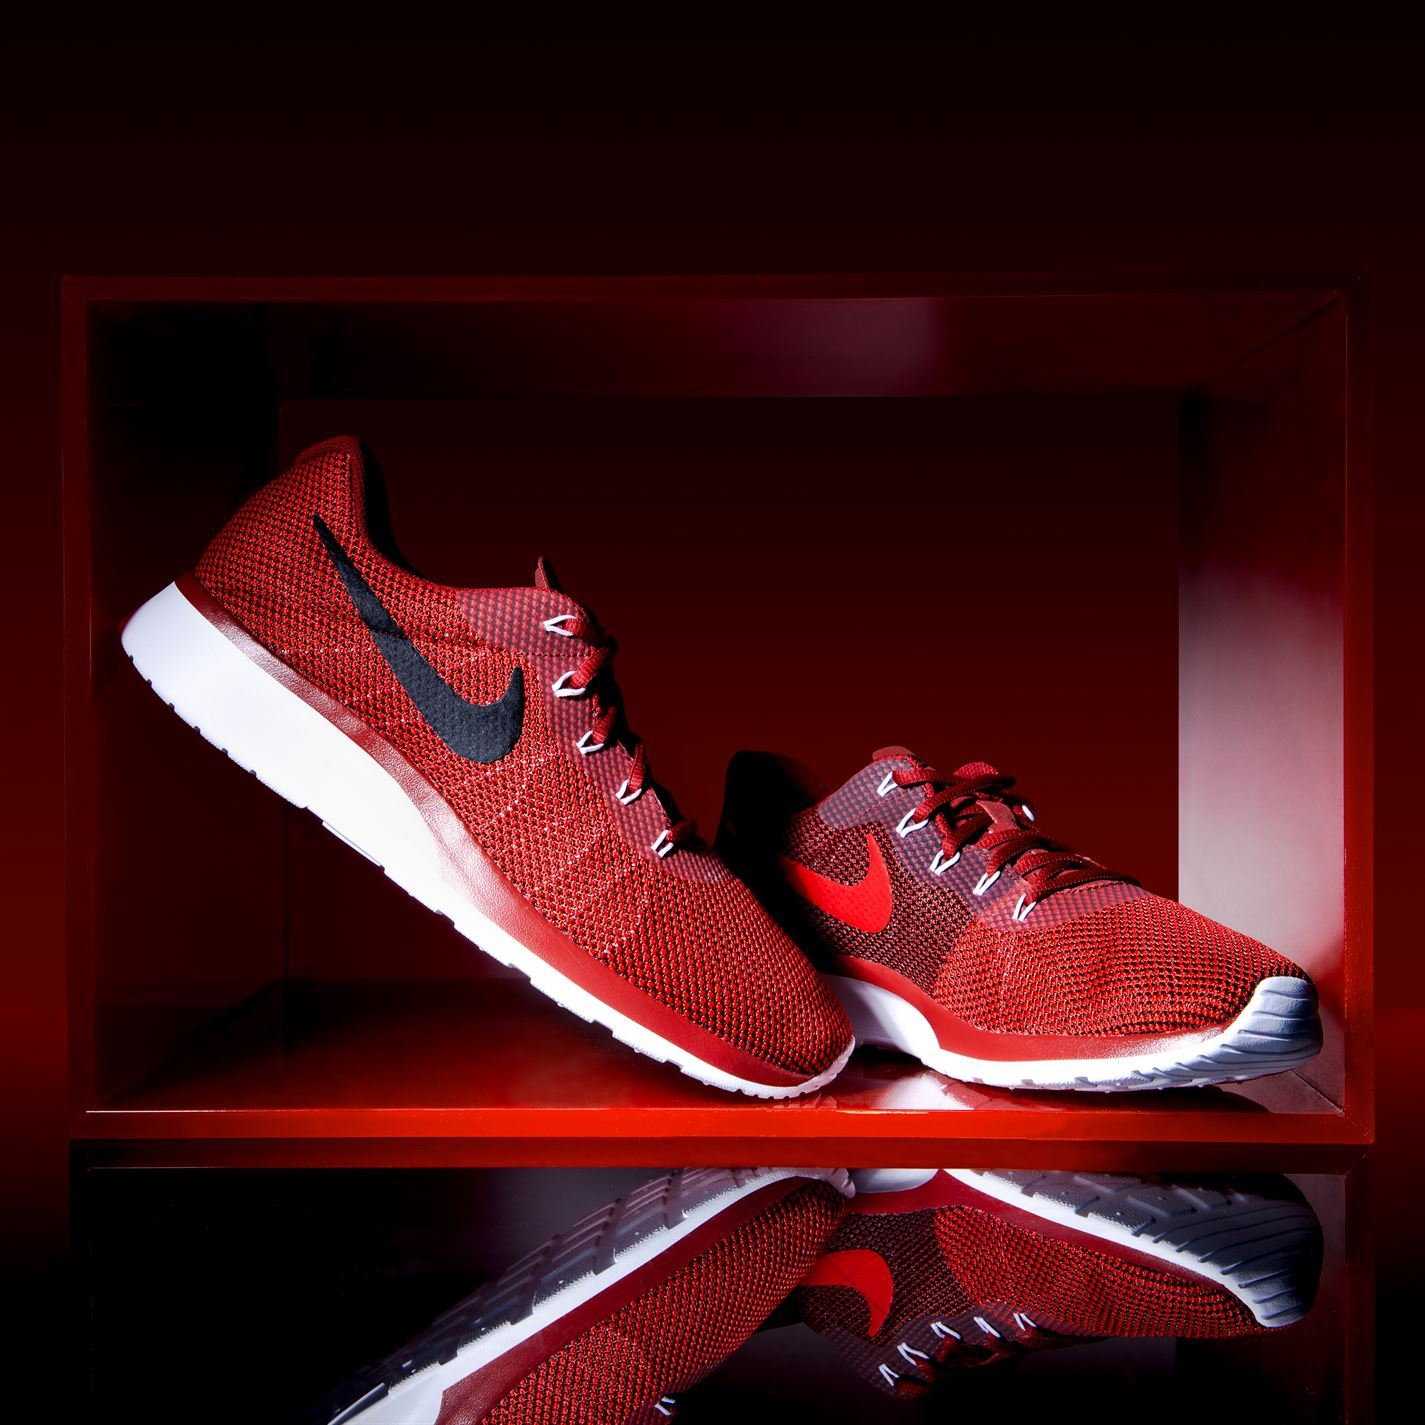 39f6ce7ae42f ... uk nike tanjun racer trainers mens red black athletic sneakers shoes  6a60c 5f872